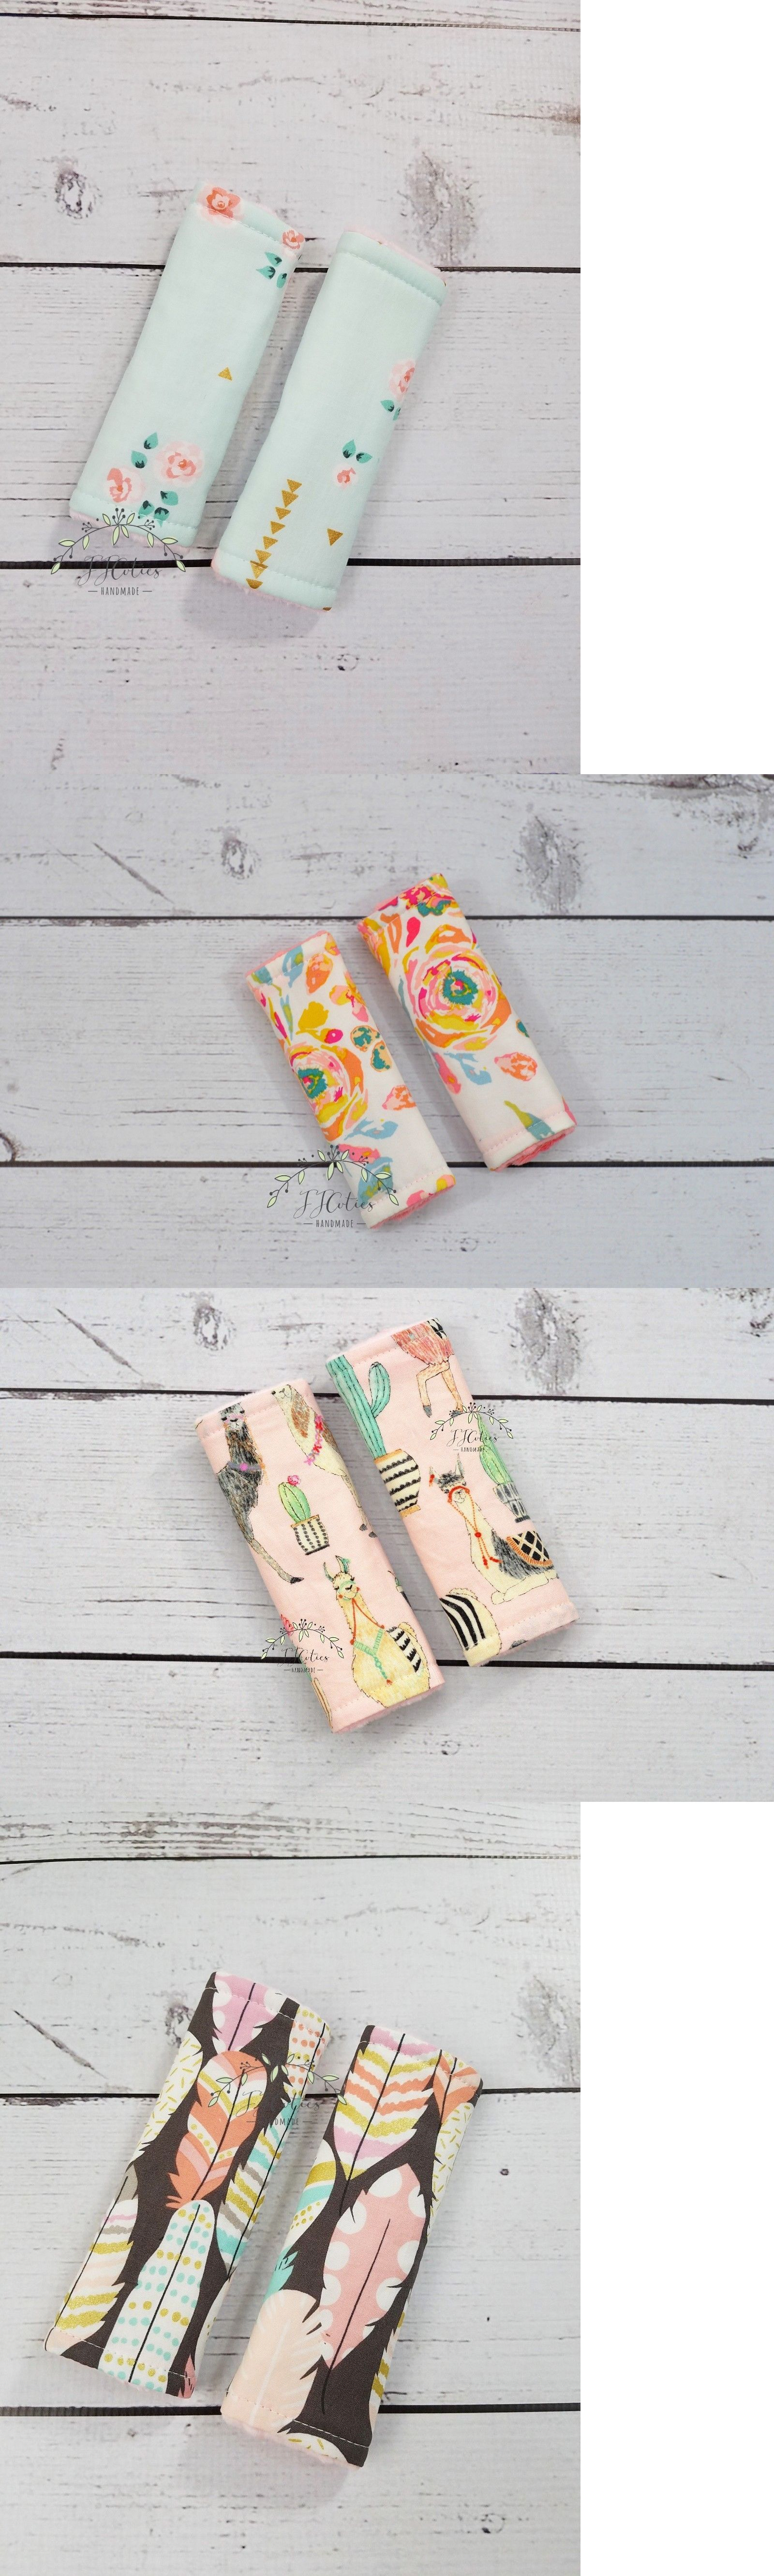 Seat Liners 180916 Reversible Infant Baby Girls Pink Mint Coral Minky Car Strap Cover Nursery BUY IT NOW ONLY 15 On EBay